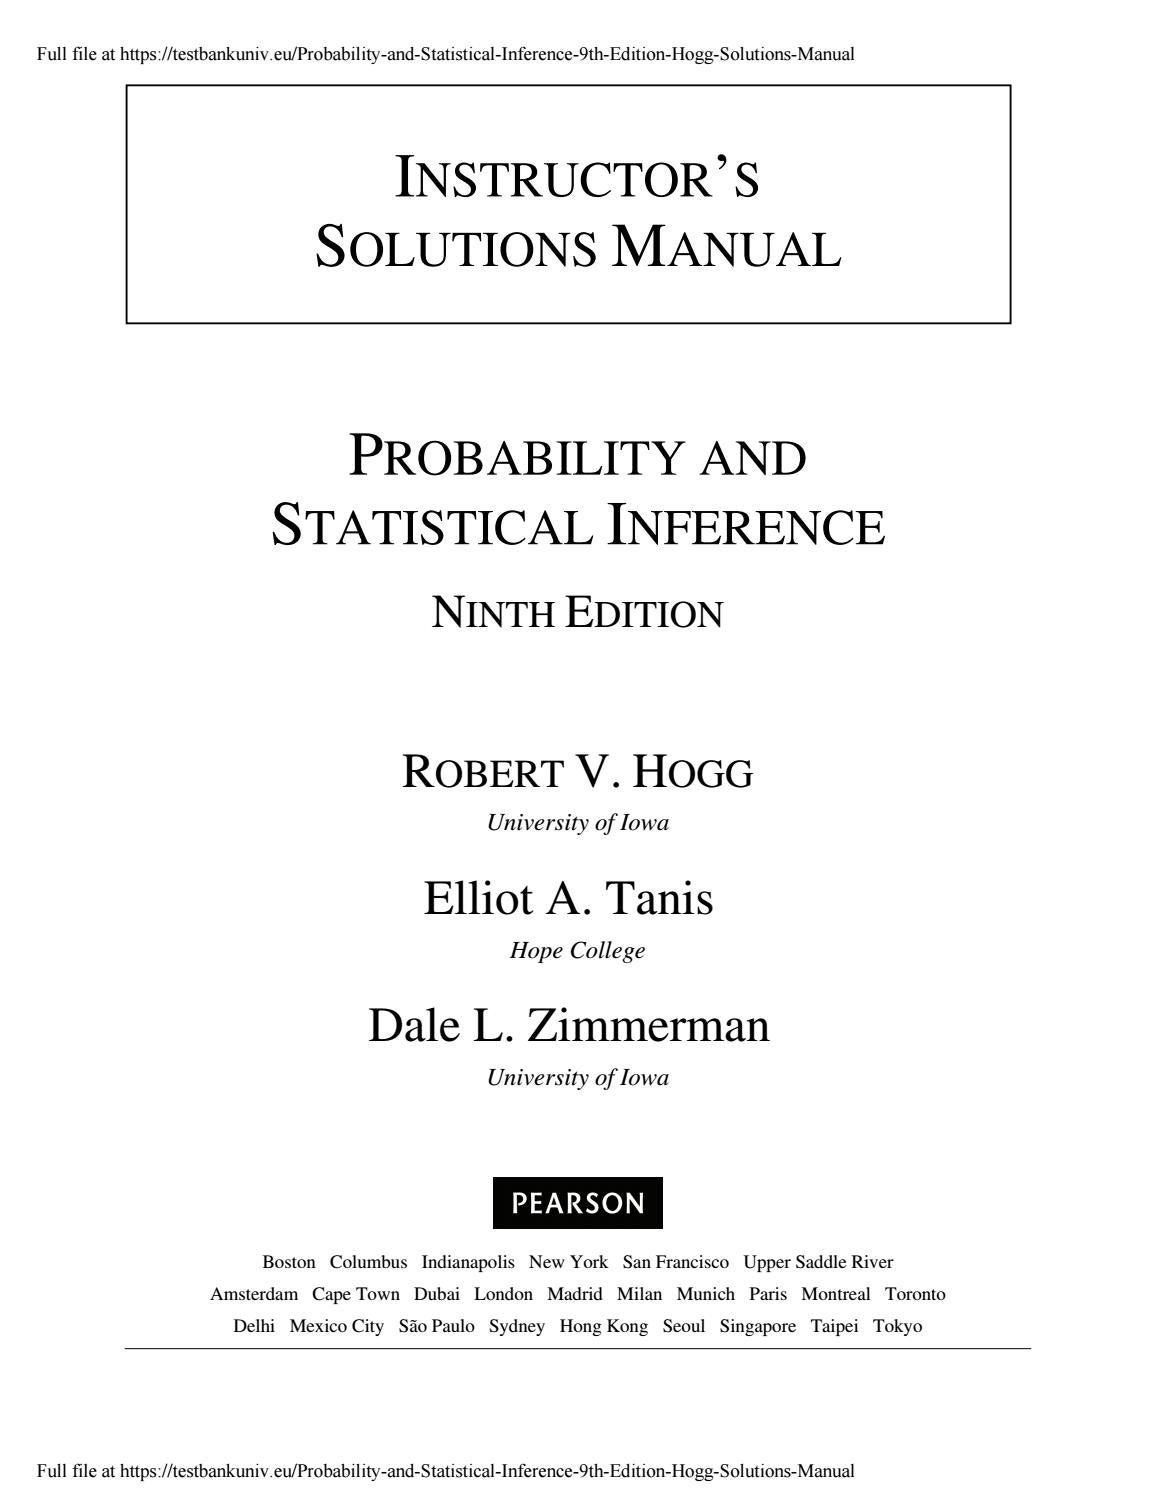 Probability and Statistical Inference 9th Edition Hogg Solutions Manual by  a304466171 - issuu